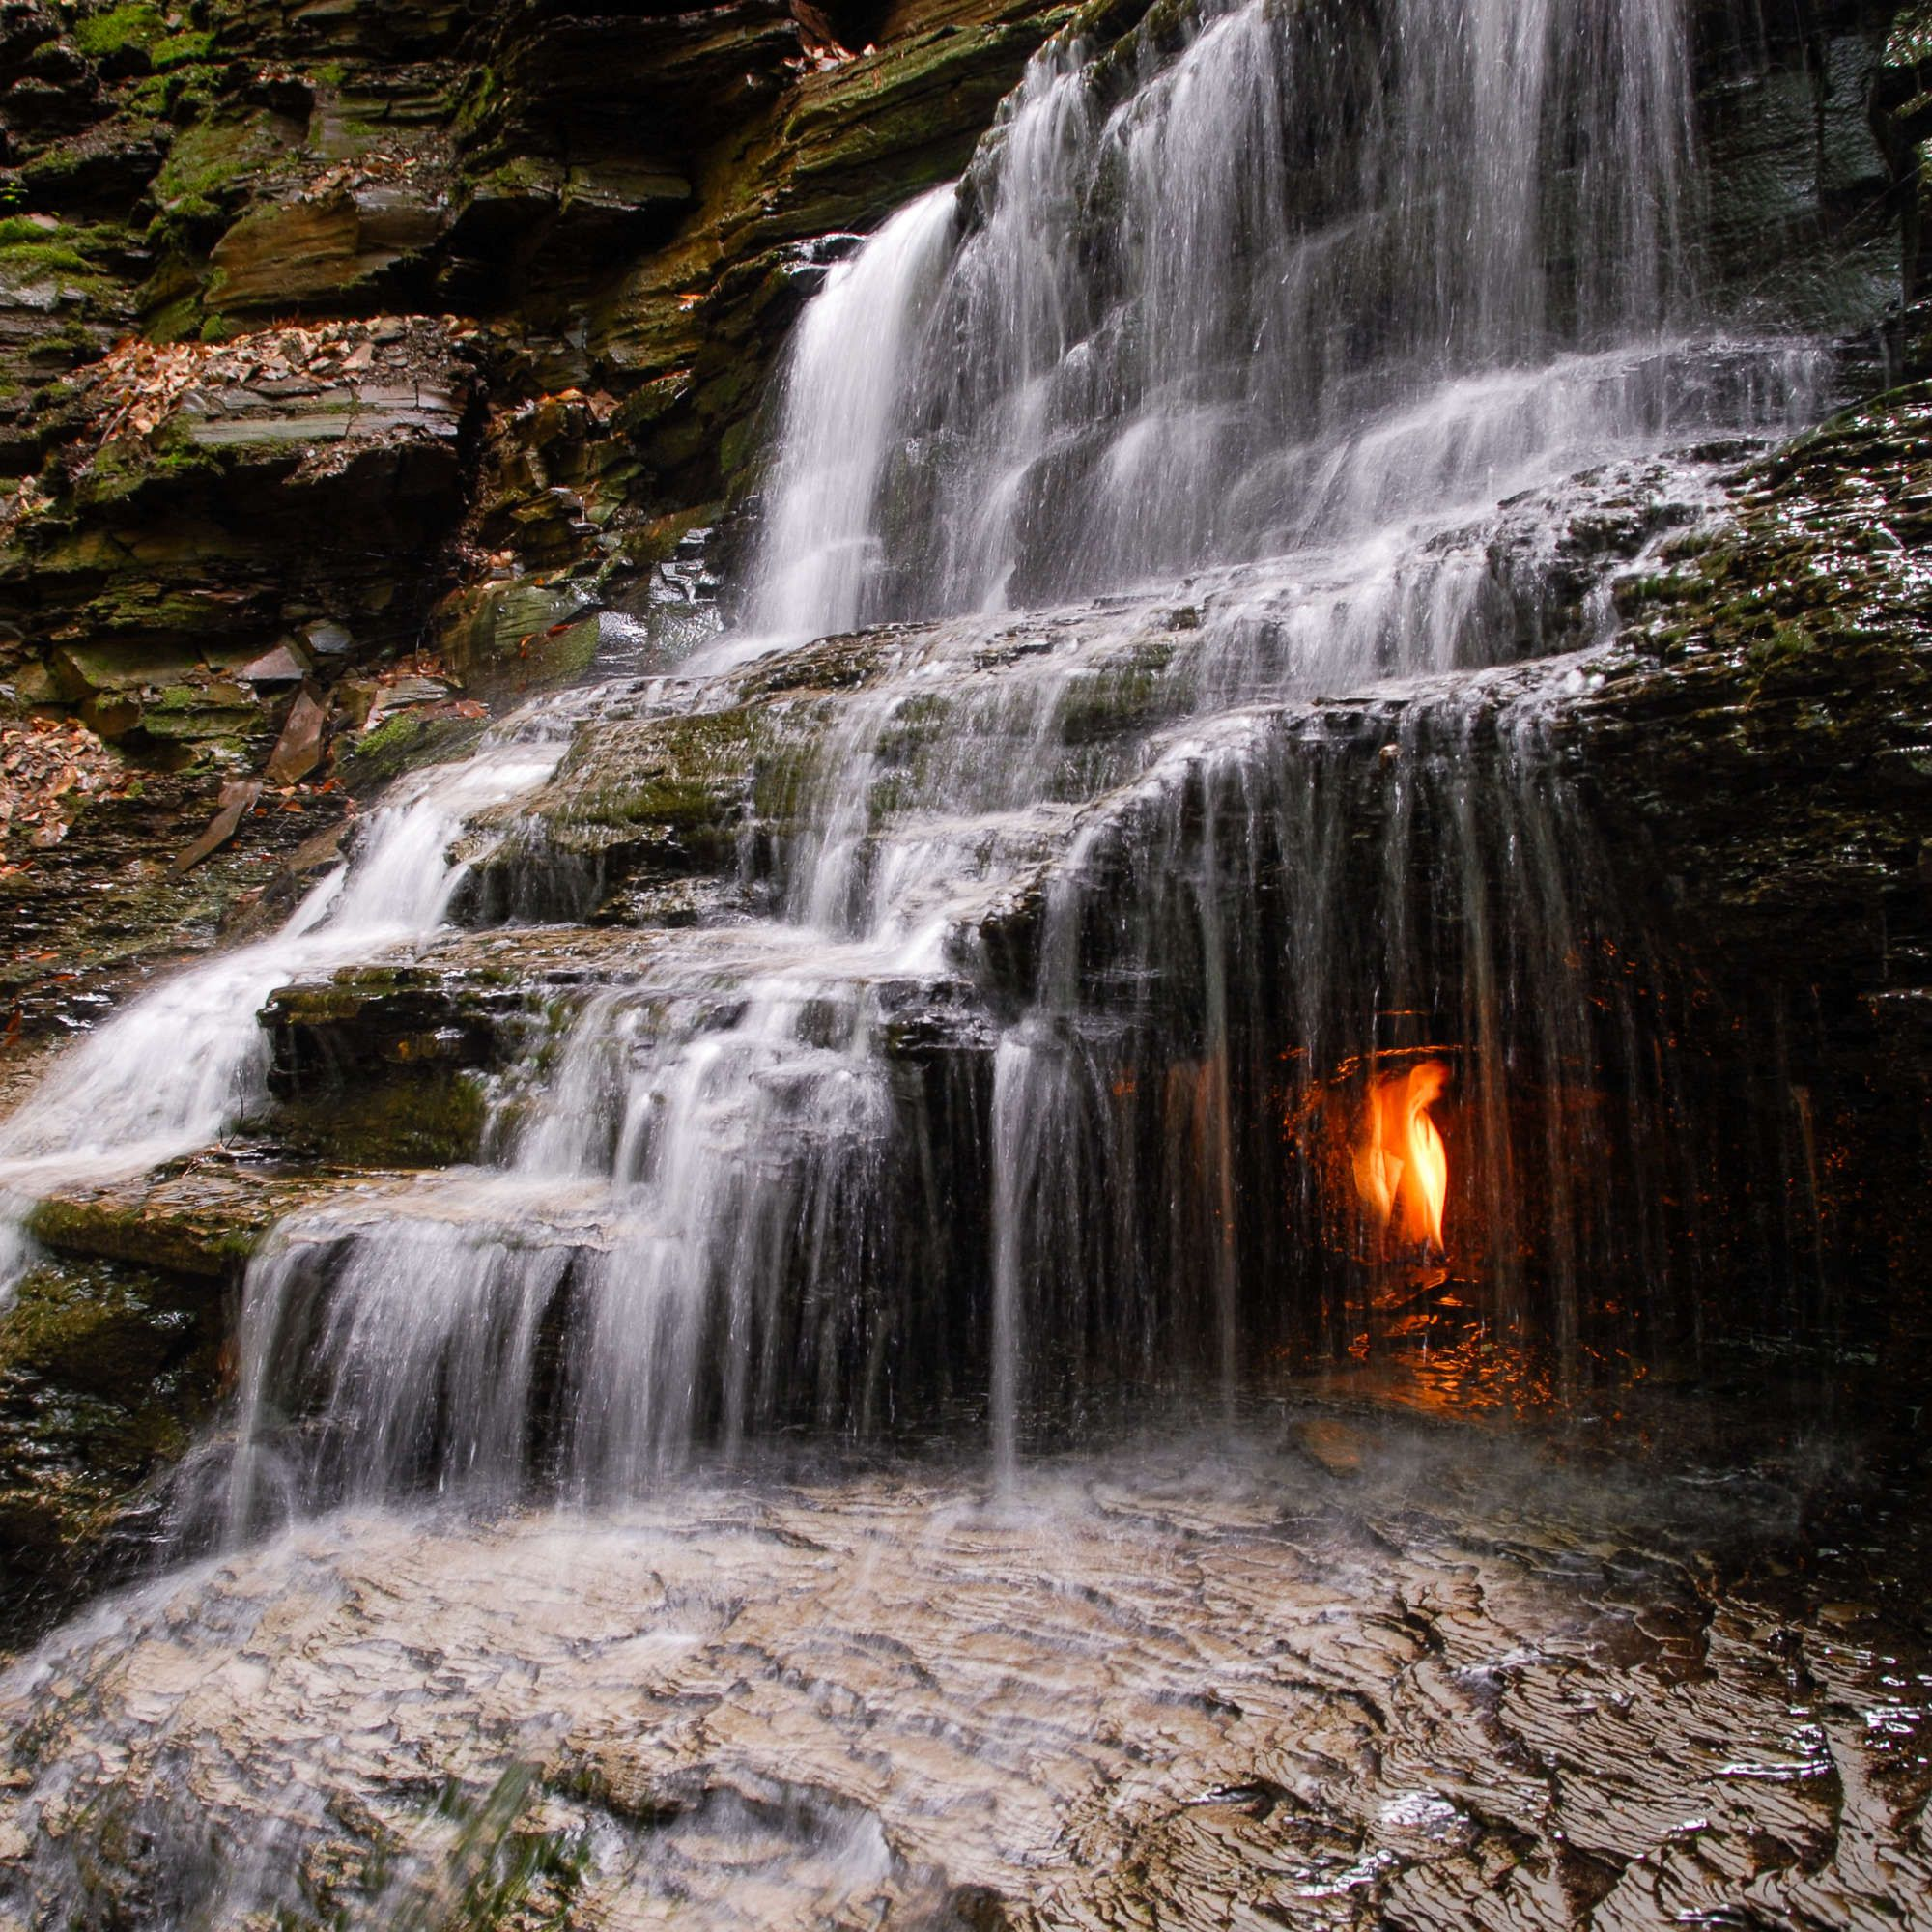 Hike to These Waterfalls Lit With an 'Eternal Flame' That (Almost) Never Goes Out #autumninnewyork